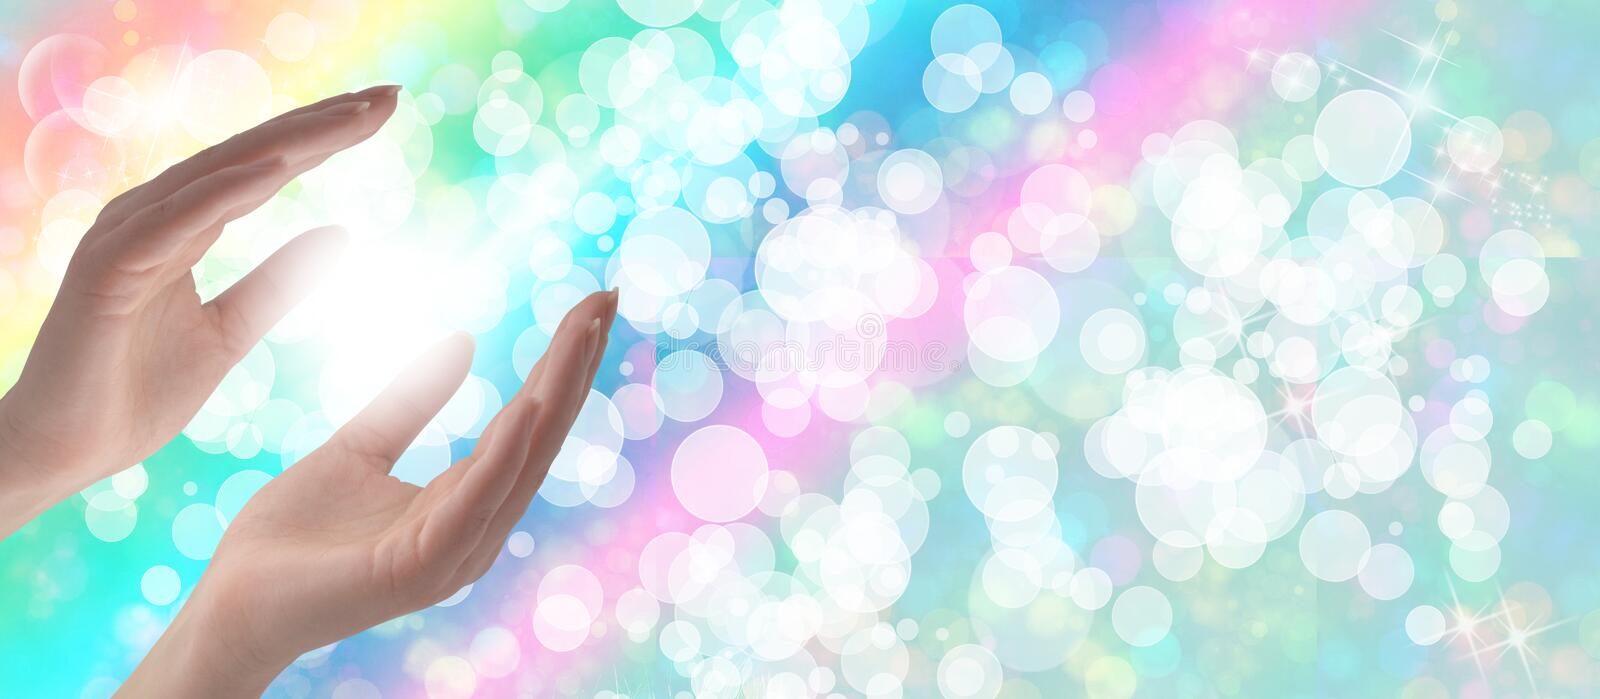 Healing Hands. On a sparkling pastel coloured background royalty free stock image